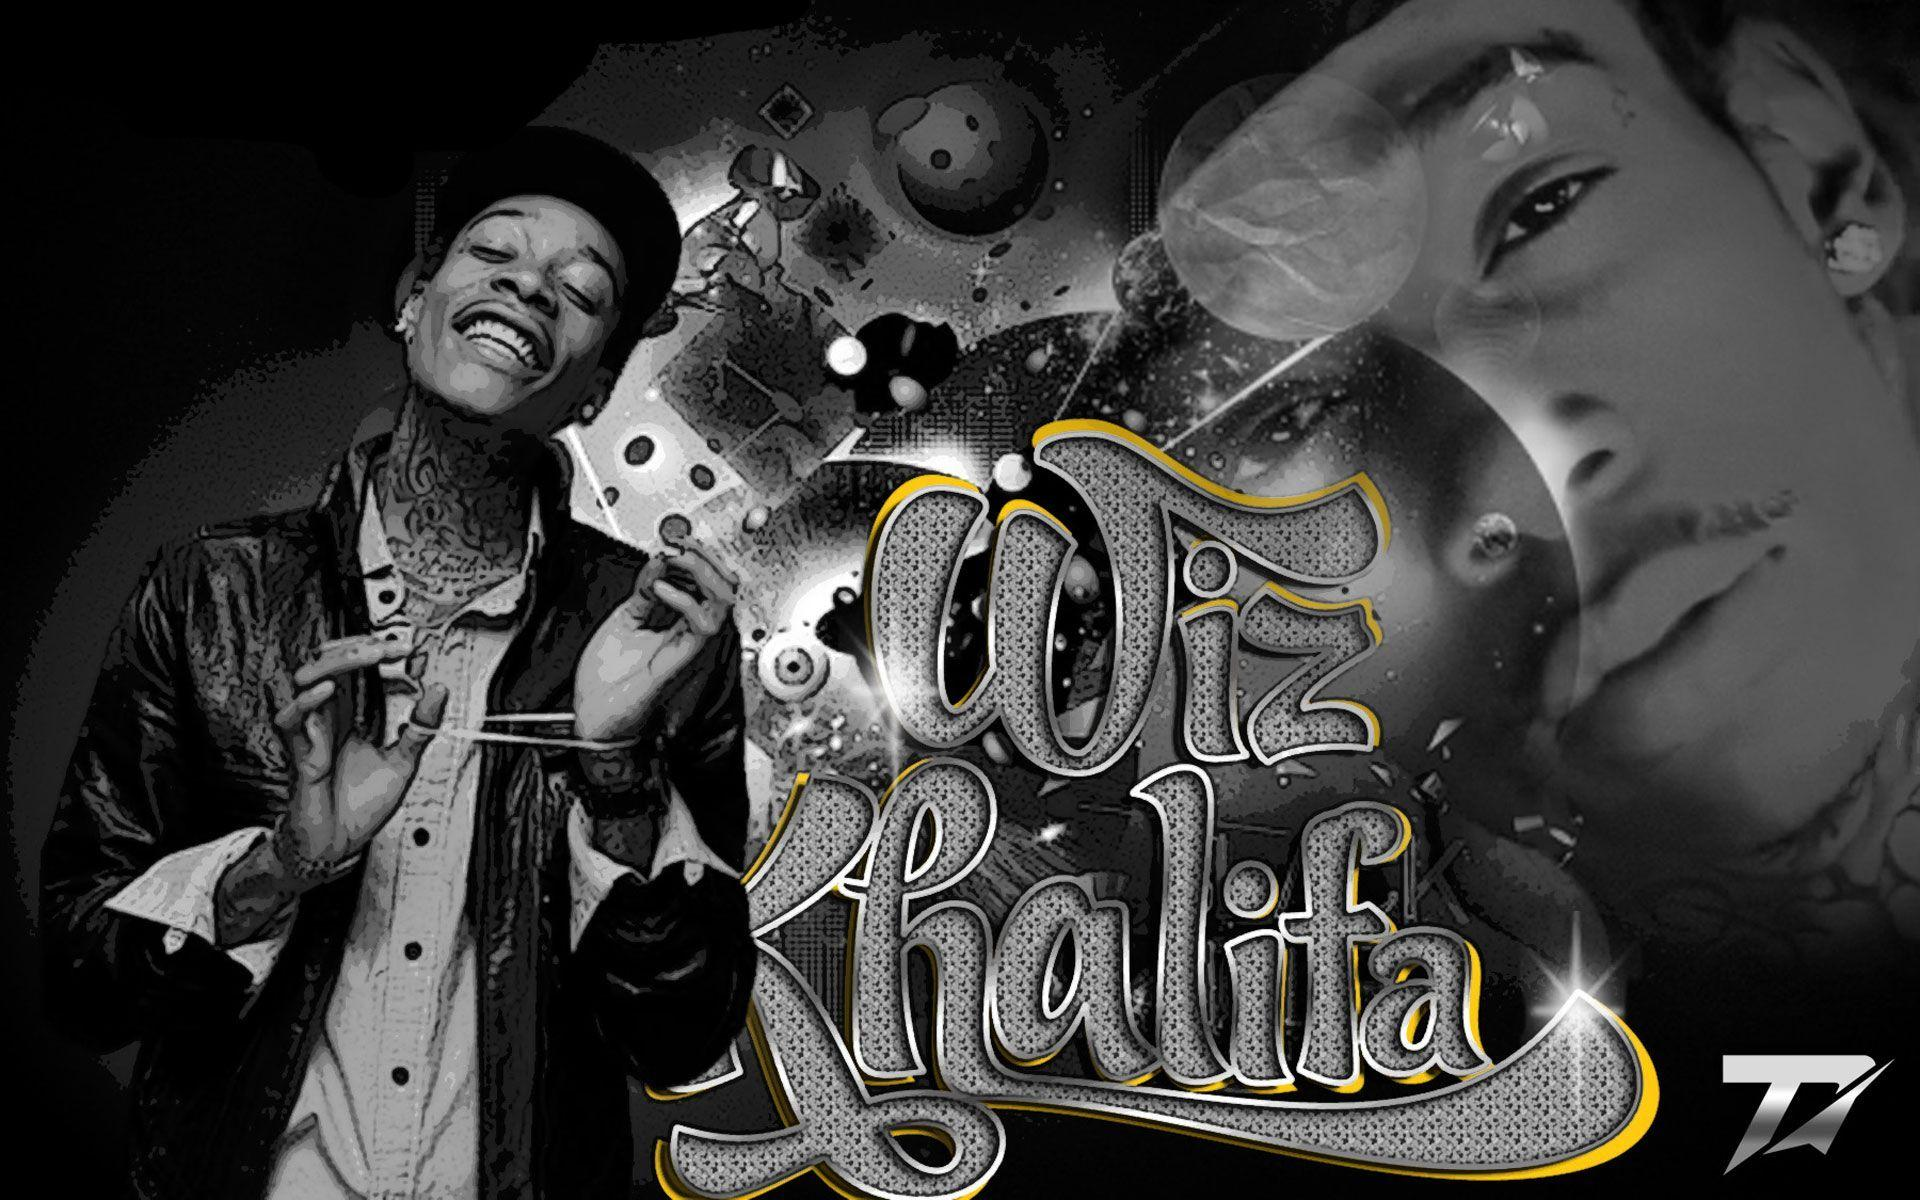 Wallpaper iphone wiz khalifa - Wiz Khalifa Background Hd Wallpapers 13434 Wallpaper Risewall